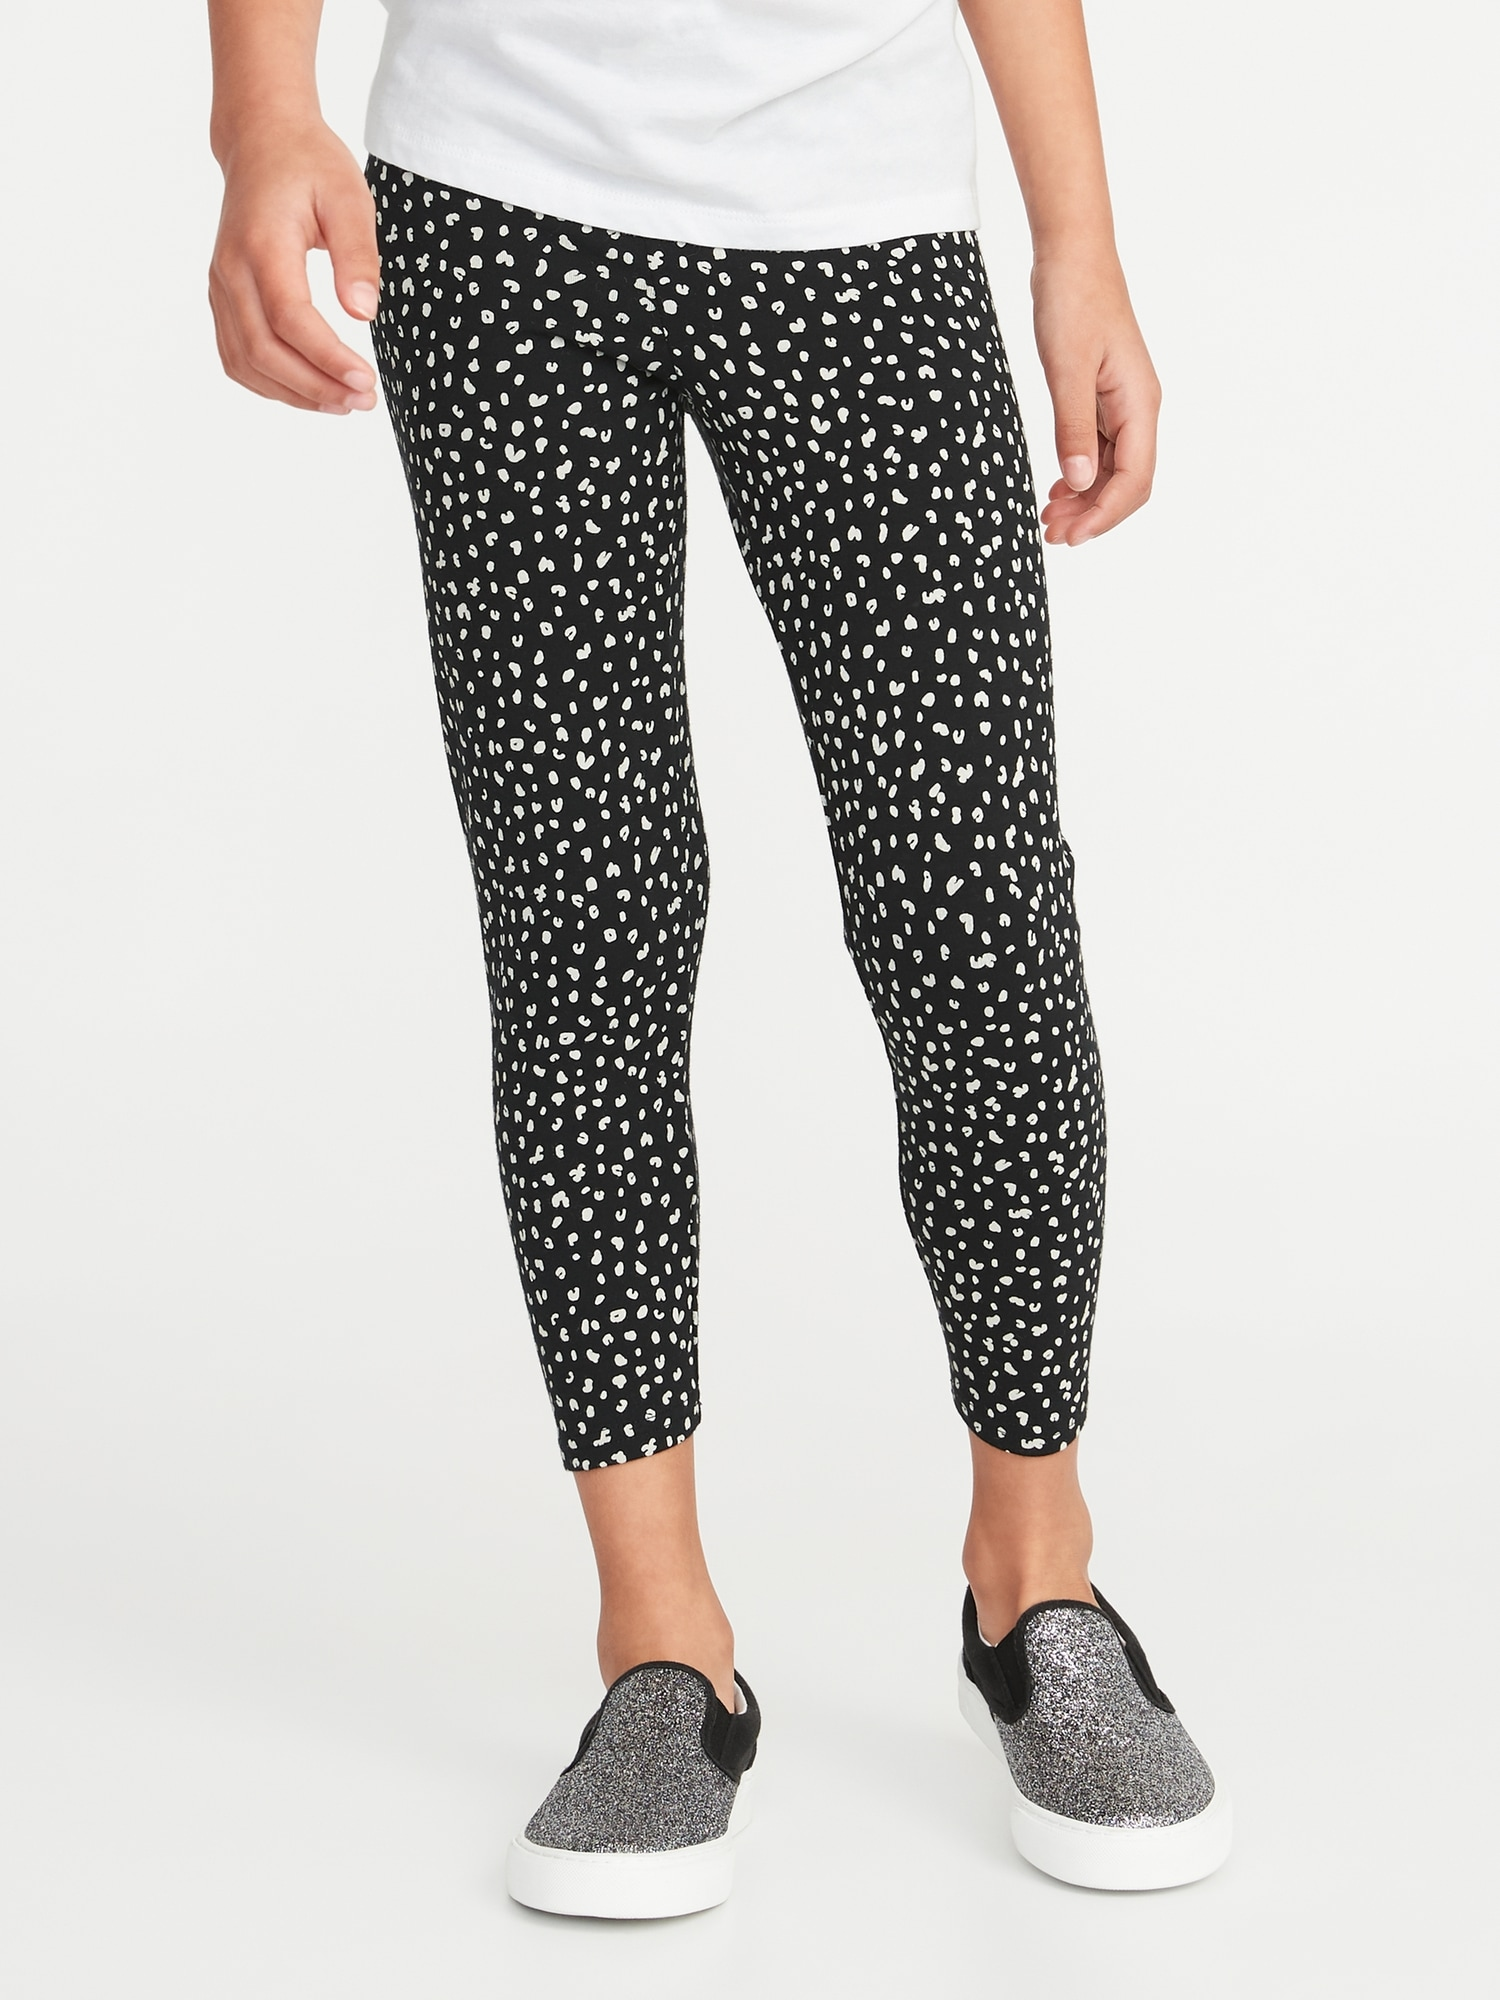 5853a26712ddc Printed Cropped Jersey Leggings for Girls | Old Navy